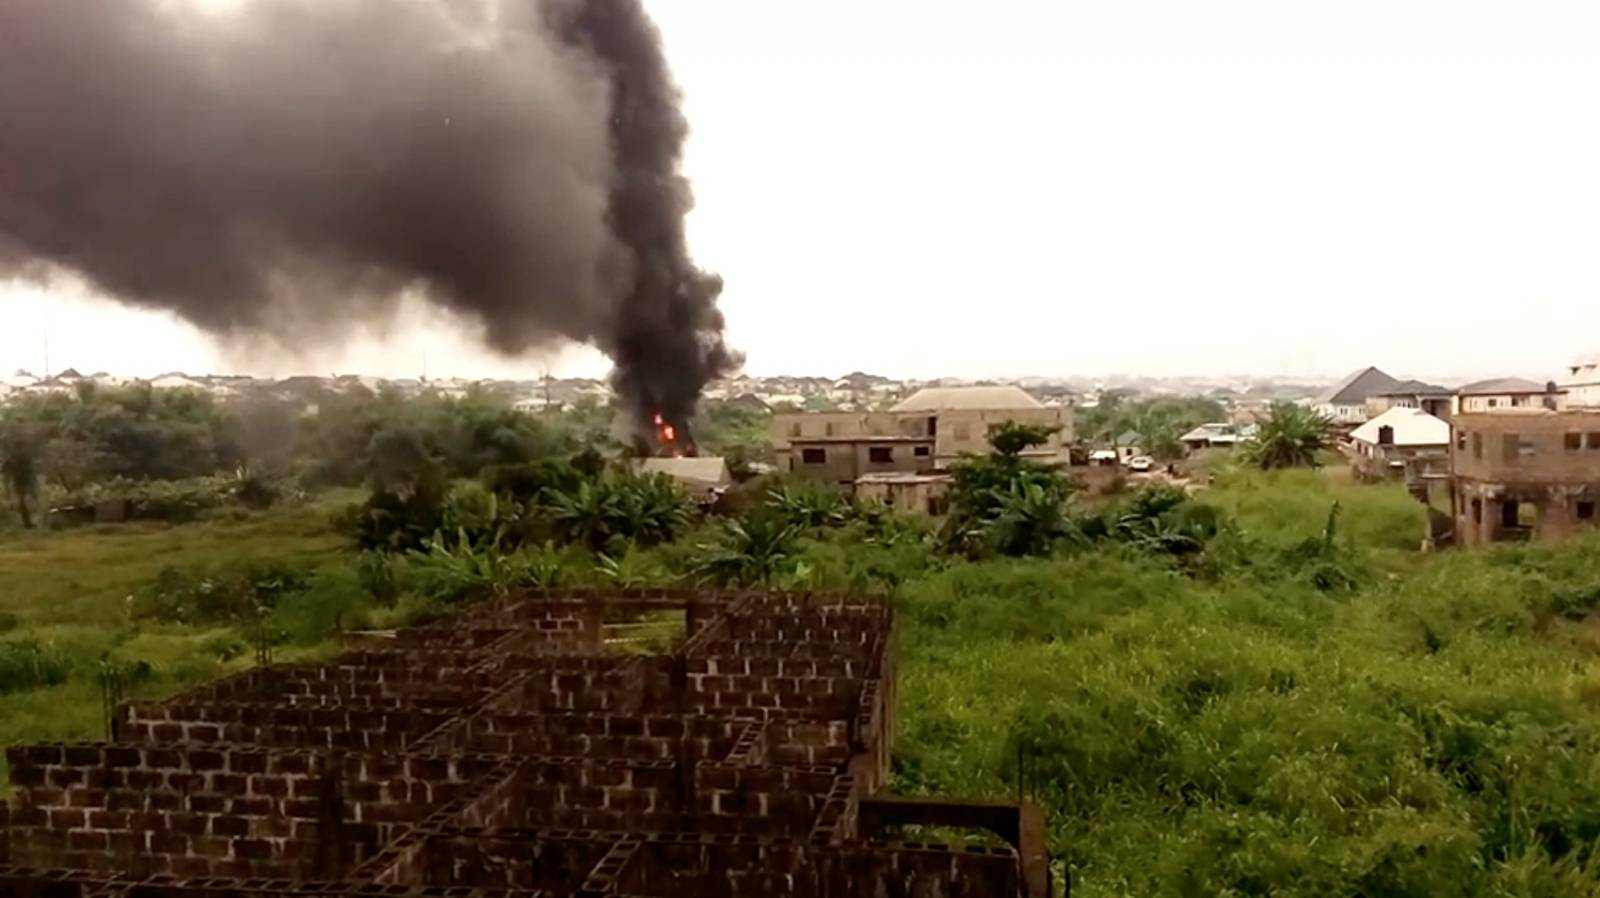 Smoke fills the air following a pipeline explosion in the residential area of Iyana Odo, Isheri-Olofin, Lagos